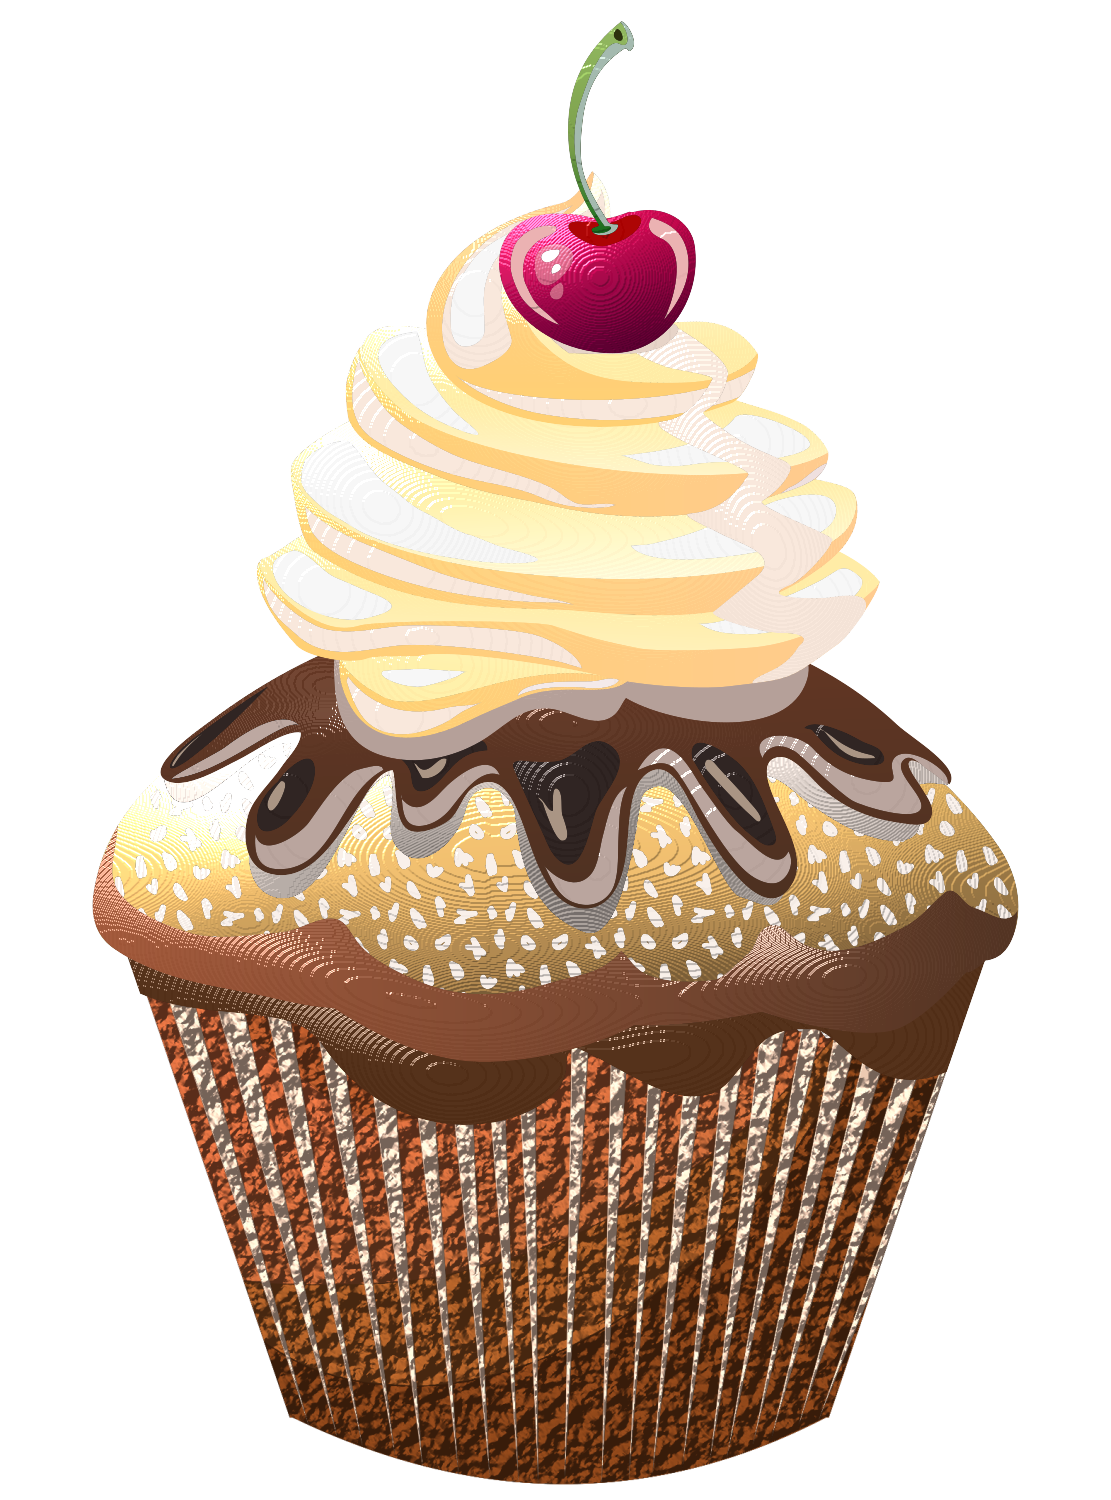 Apple with muffins clipart picture freeuse ✿**✿*CUPCAKE*✿**✿* | Cupcakes | Pinterest | Clip art, Decoupage ... picture freeuse